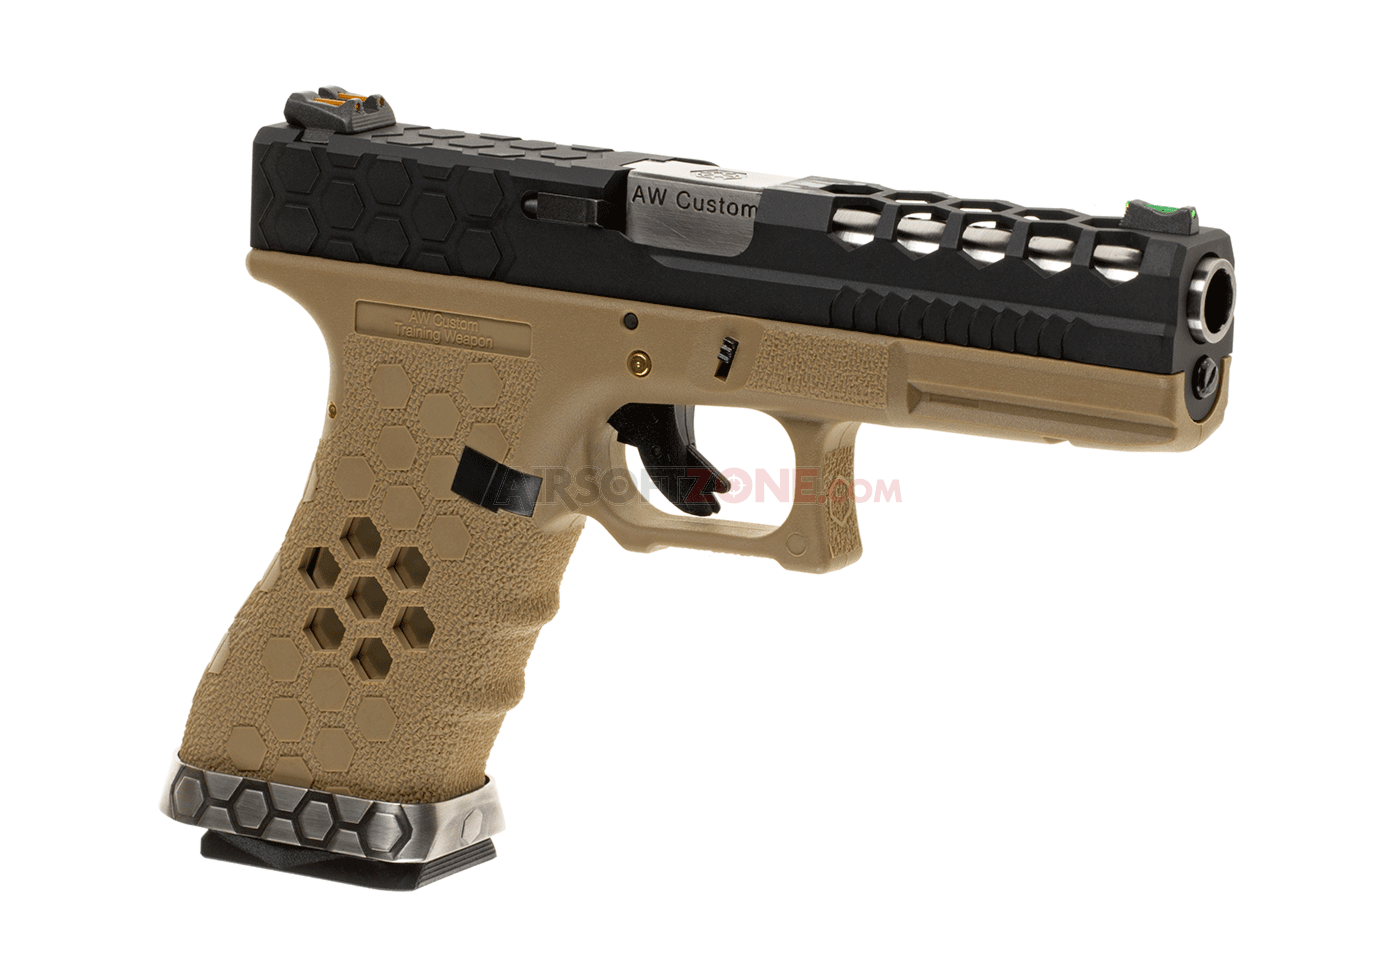 AW Custom - airsoft ch Onlineshop